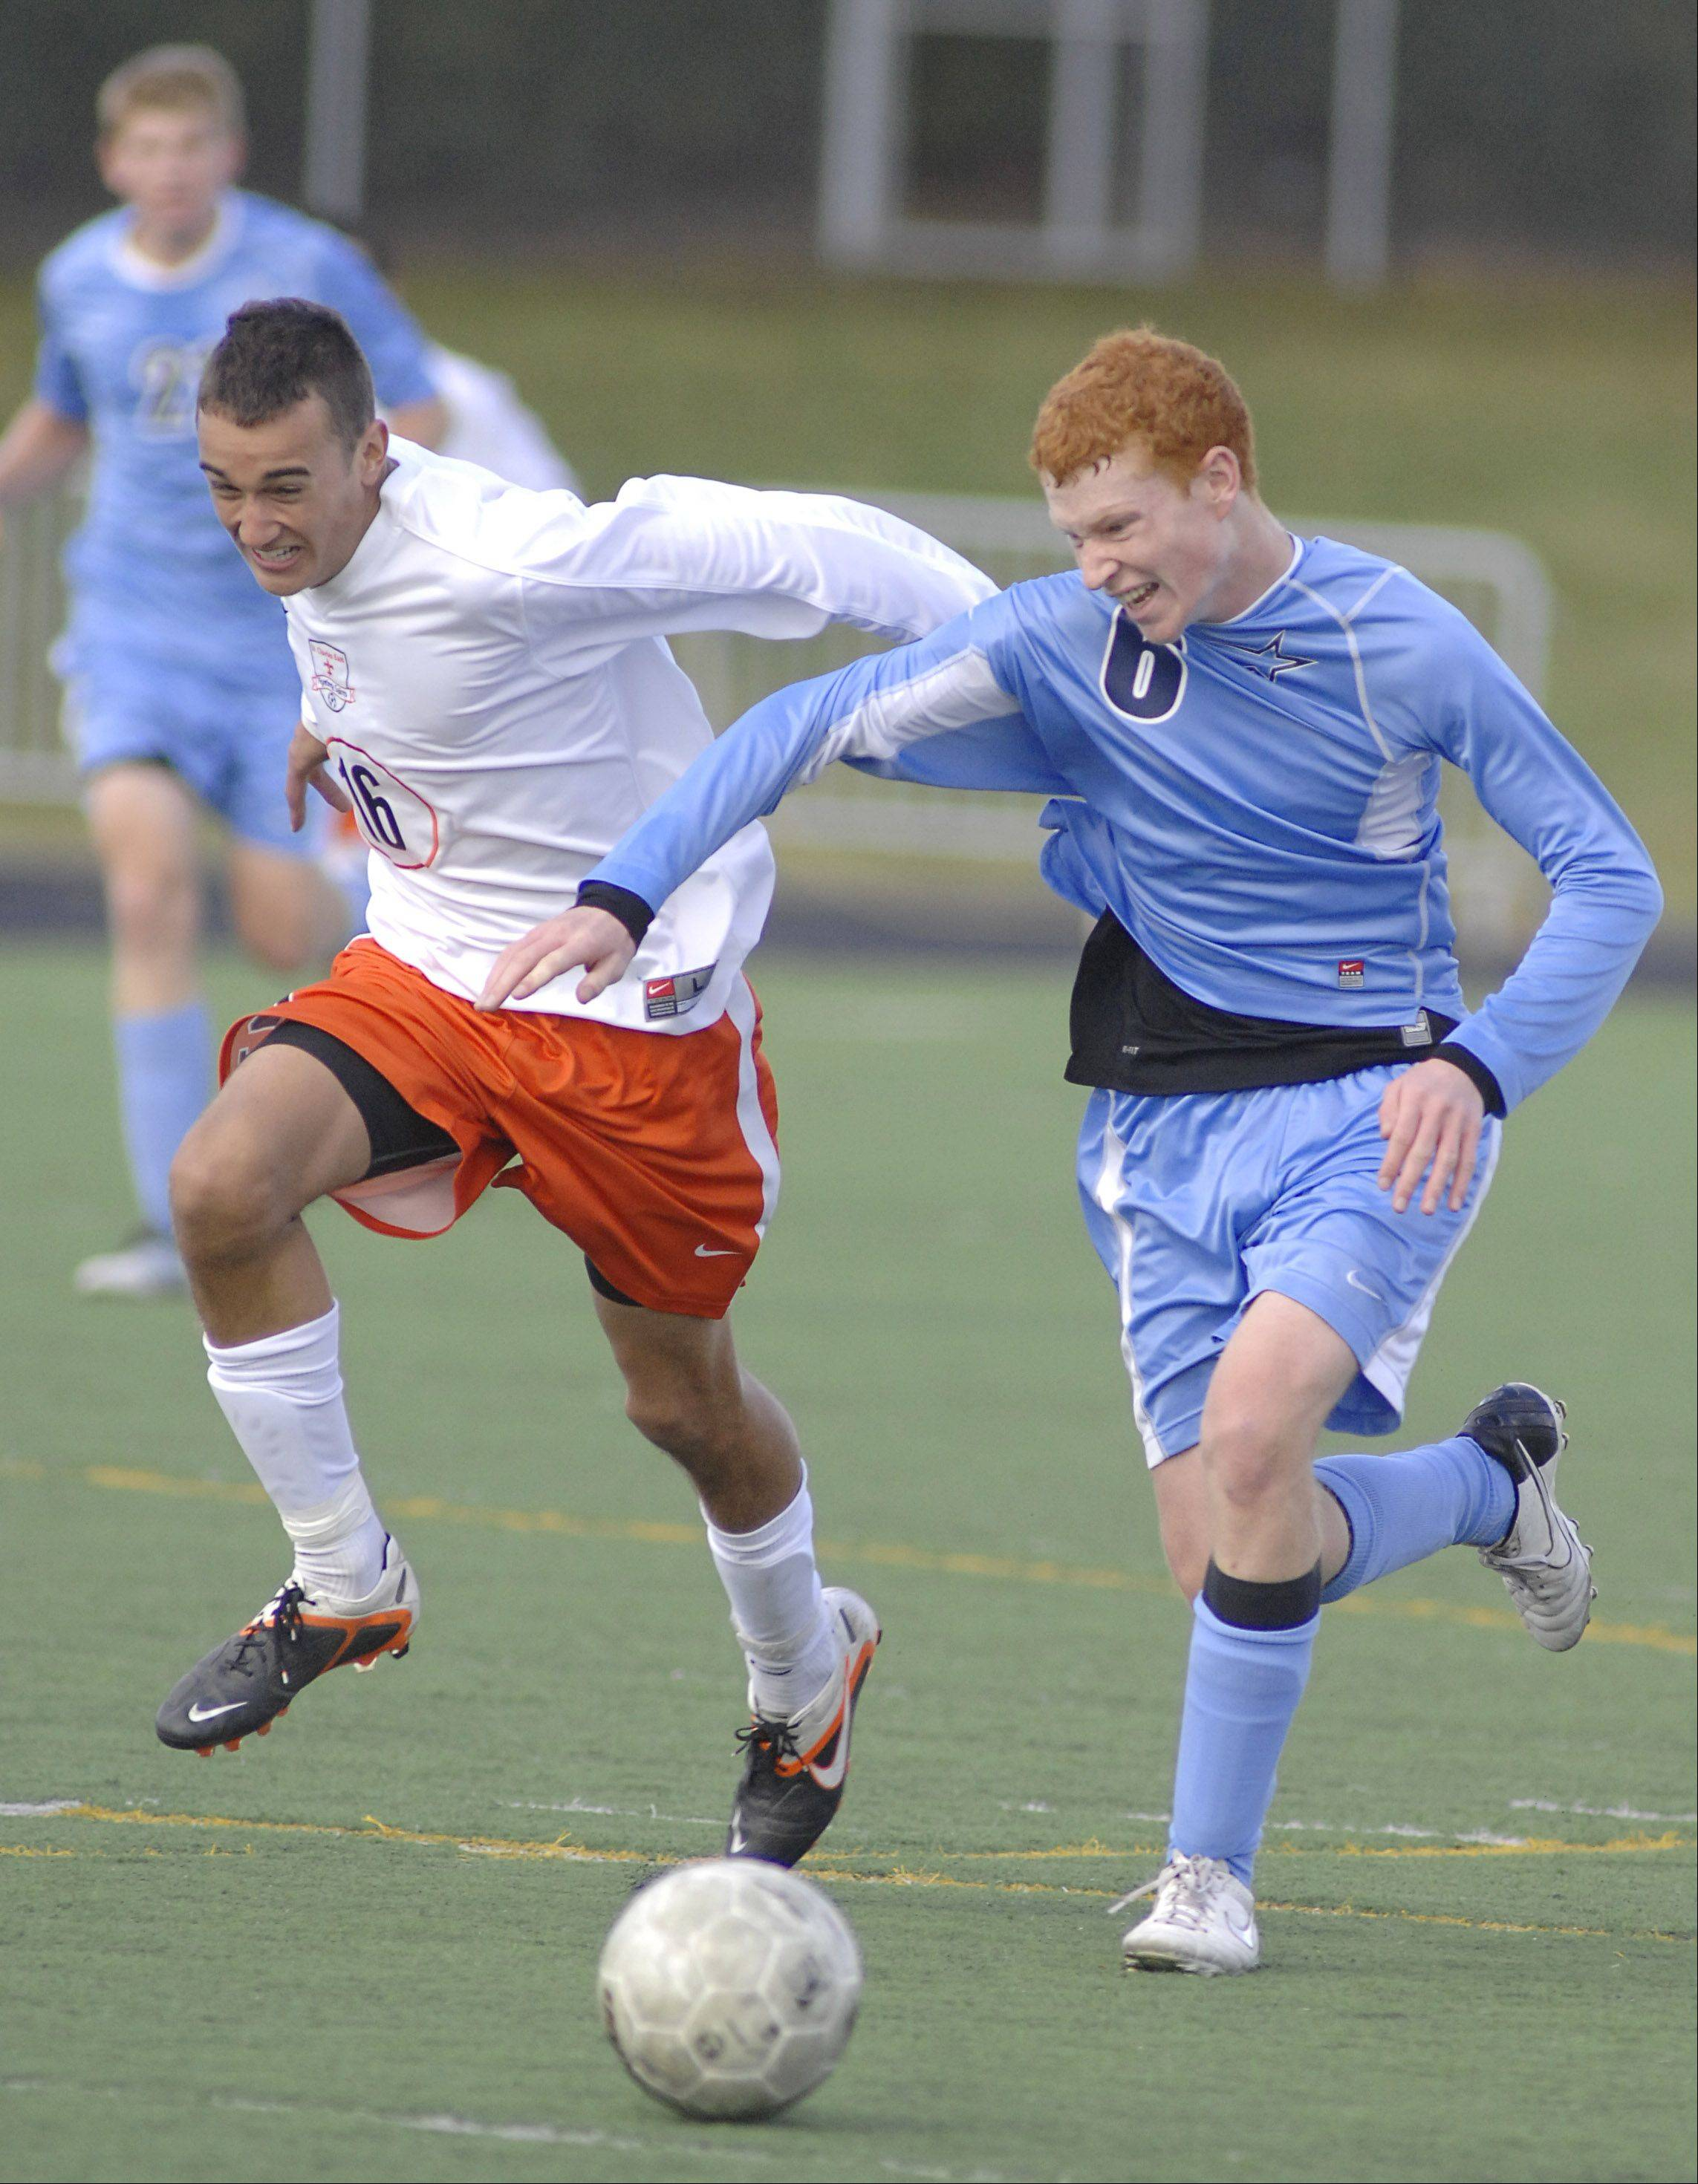 St. Charles East's Jordan Moore and St. Charles North's Jack Fries battle for the ball in the second half of the regional championship on Saturday, October 20.